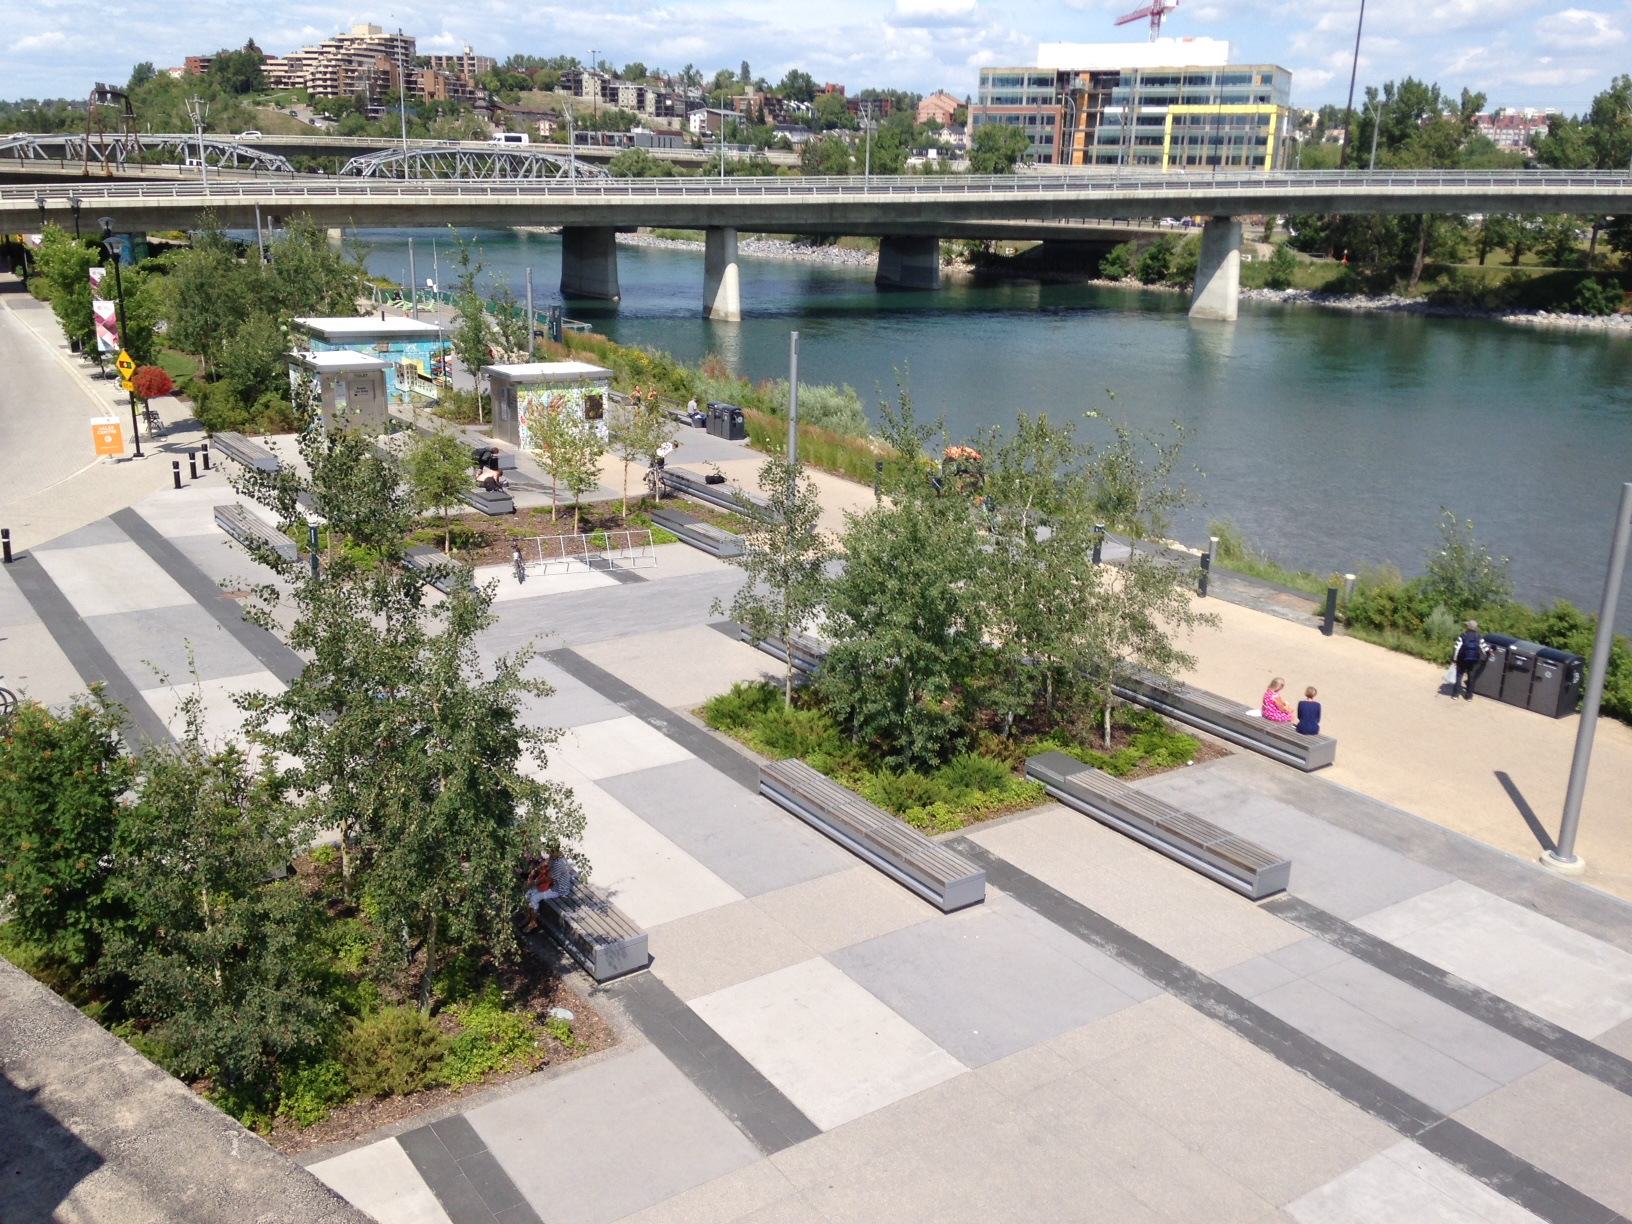 East Village's Riverwalk with the Langevin bridge, 4th, 5th and LRT flyovers in the background.